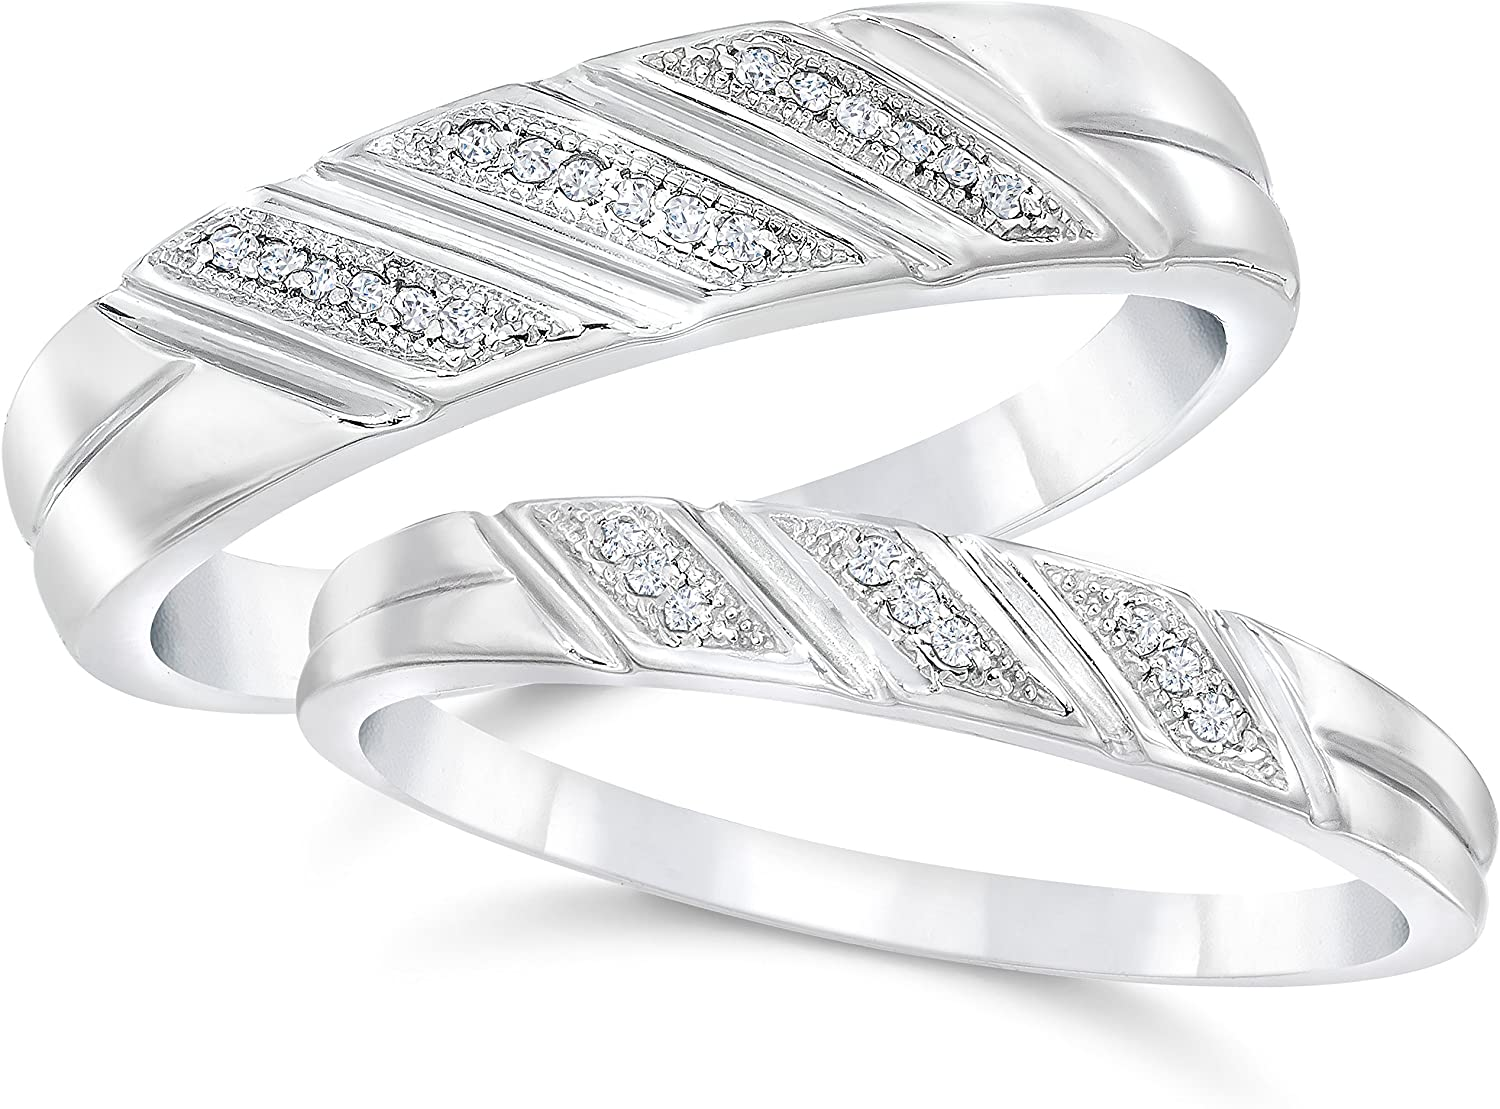 It is an image of Amazon.com: Diamond Wedding Rings Set 34/34cttw Matching His Hers